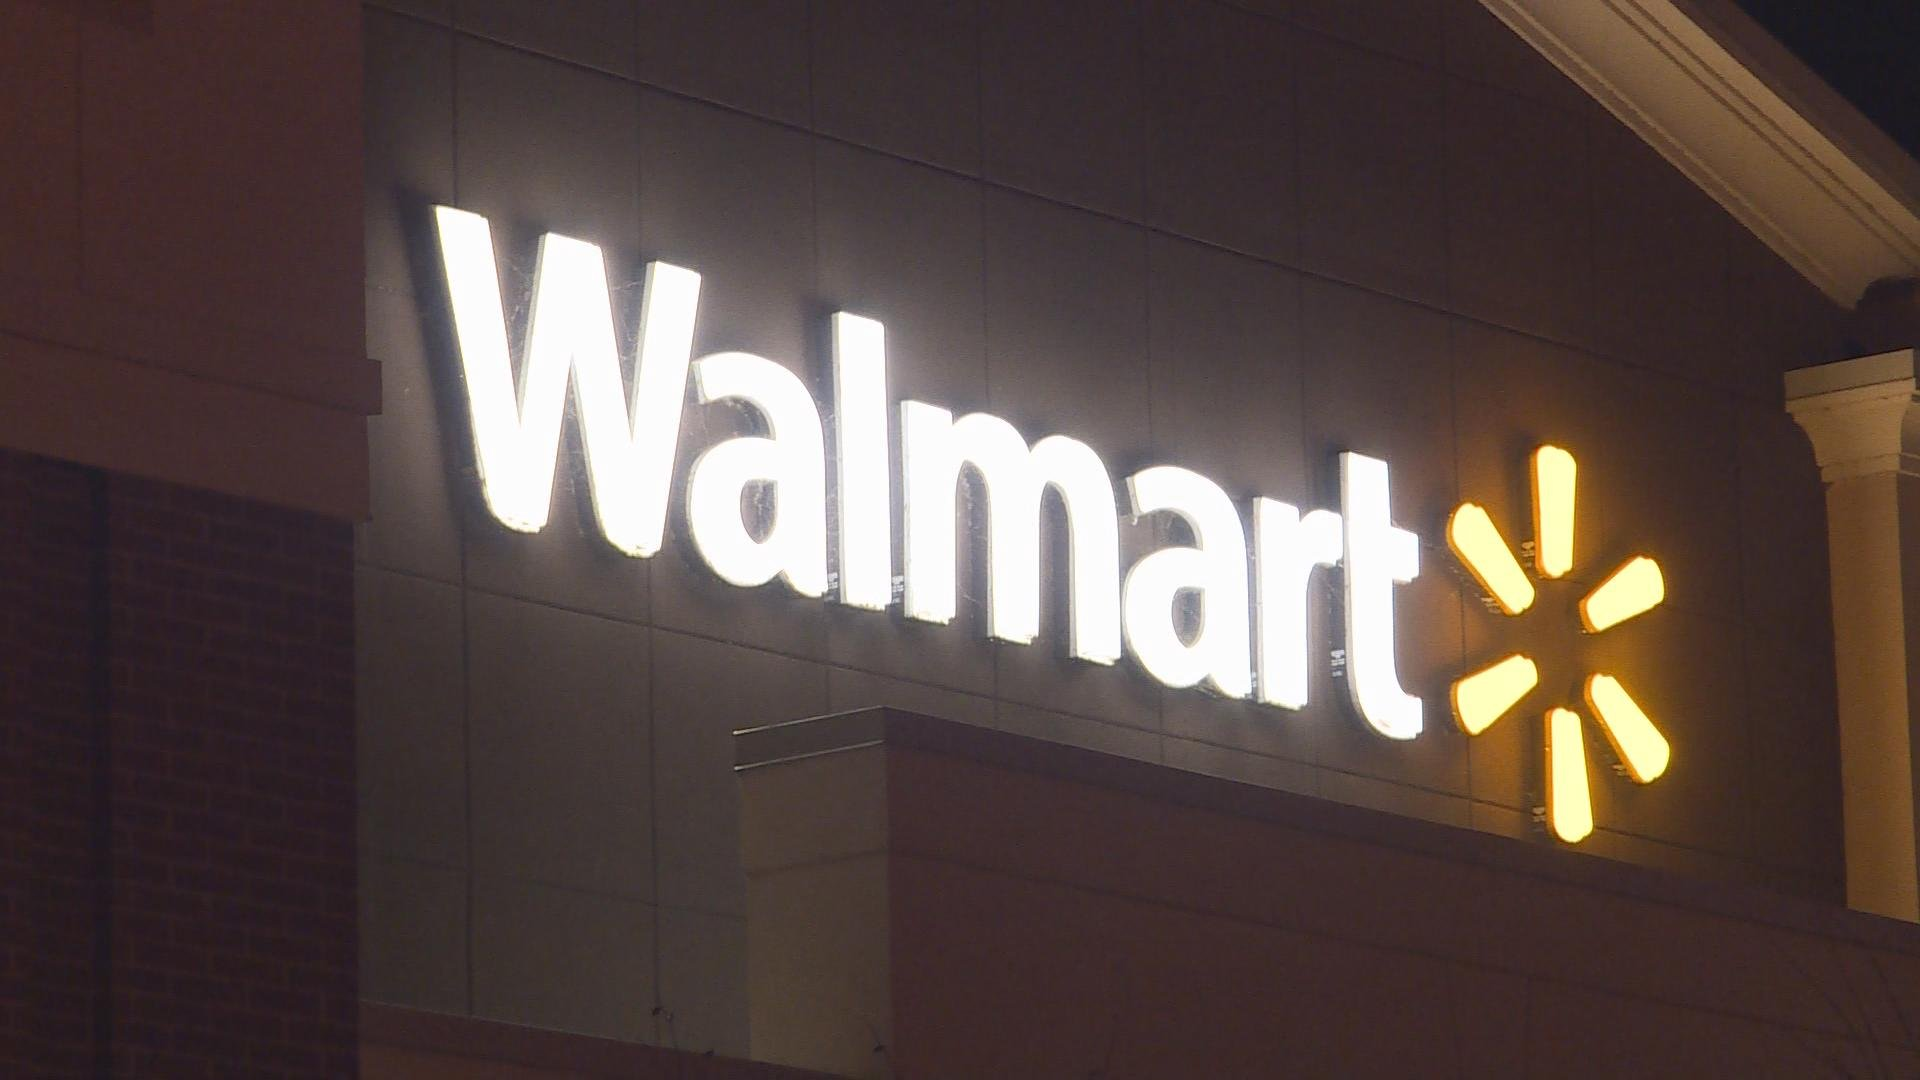 Walmart is suing the City of Monona to reduce its tax assessment